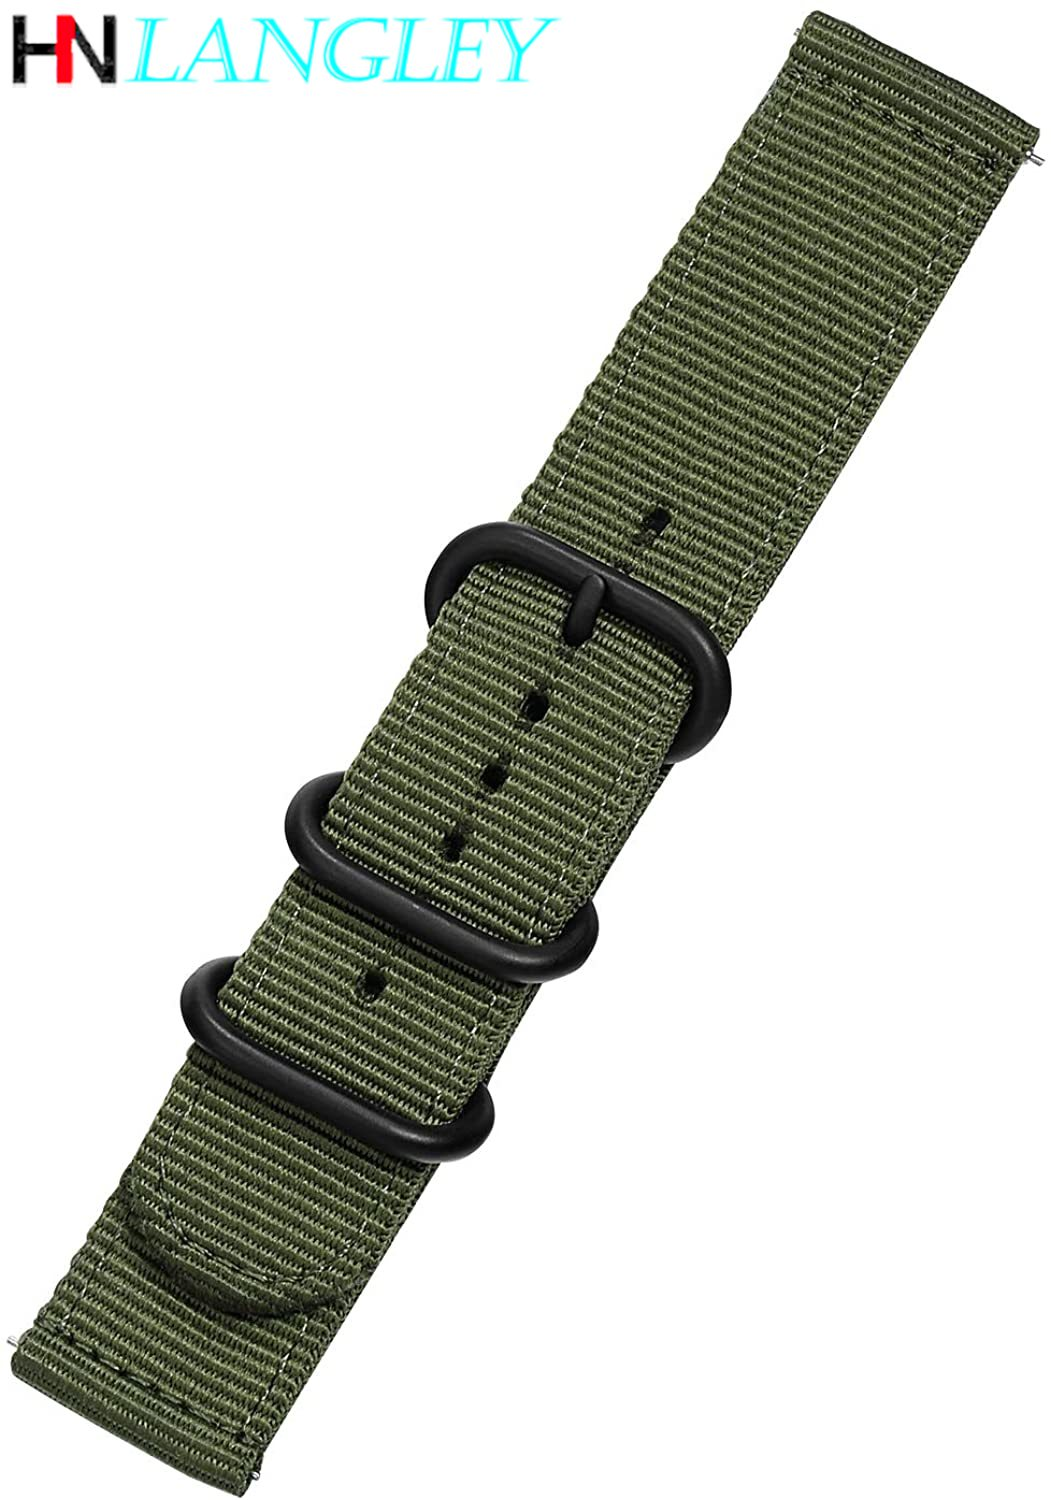 Quick Release Watch Strap for Men Women Premium Nylon NATO Watch Band with Black Stainless Buckle -18mm, 20mm,22mm,24mm